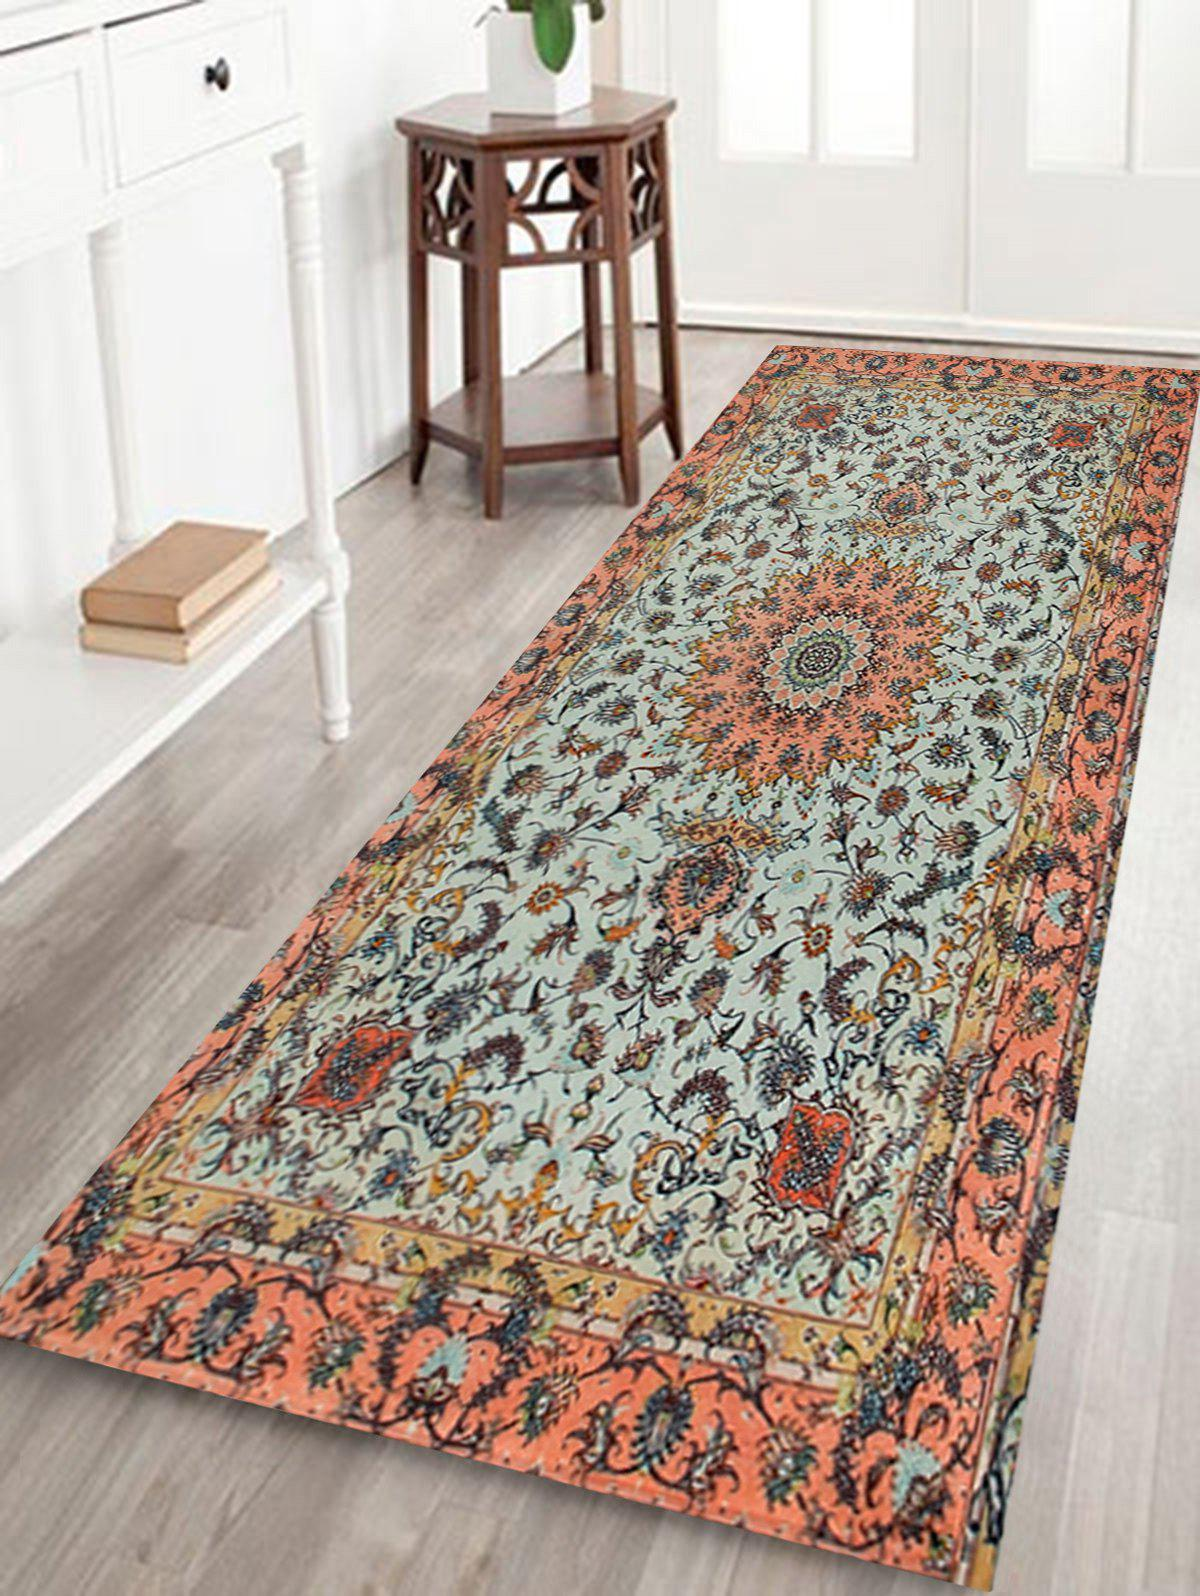 Persian Style Anti Slip Floor Area RugHOME<br><br>Size: W24 INCH * L71 INCH; Color: COLORMIX; Products Type: Bath rugs; Materials: Coral FLeece; Pattern: Floral; Style: Ethnic; Shape: Rectangle; Package Contents: 1 x Rug;